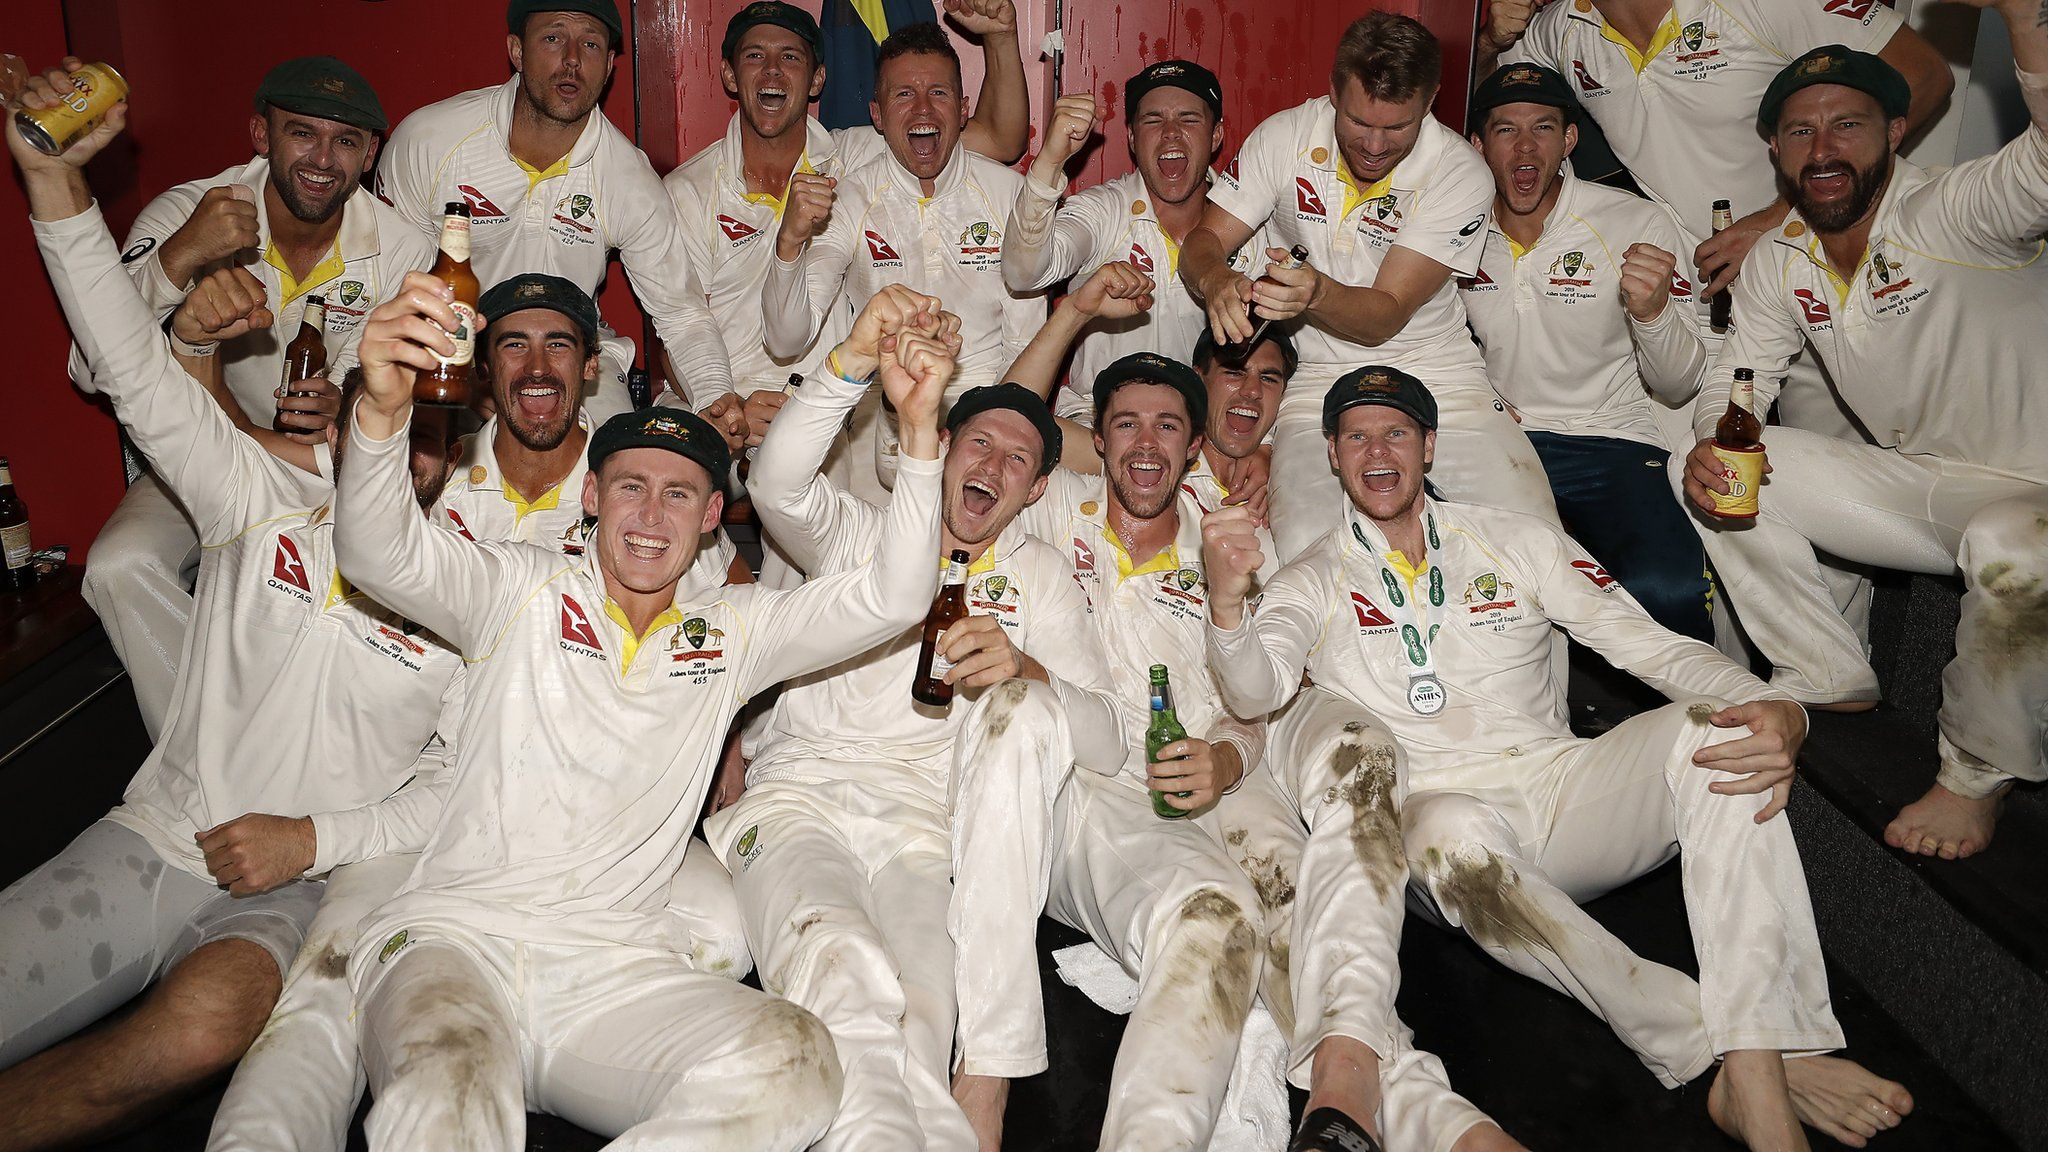 The Ashes is retained by Australia in England